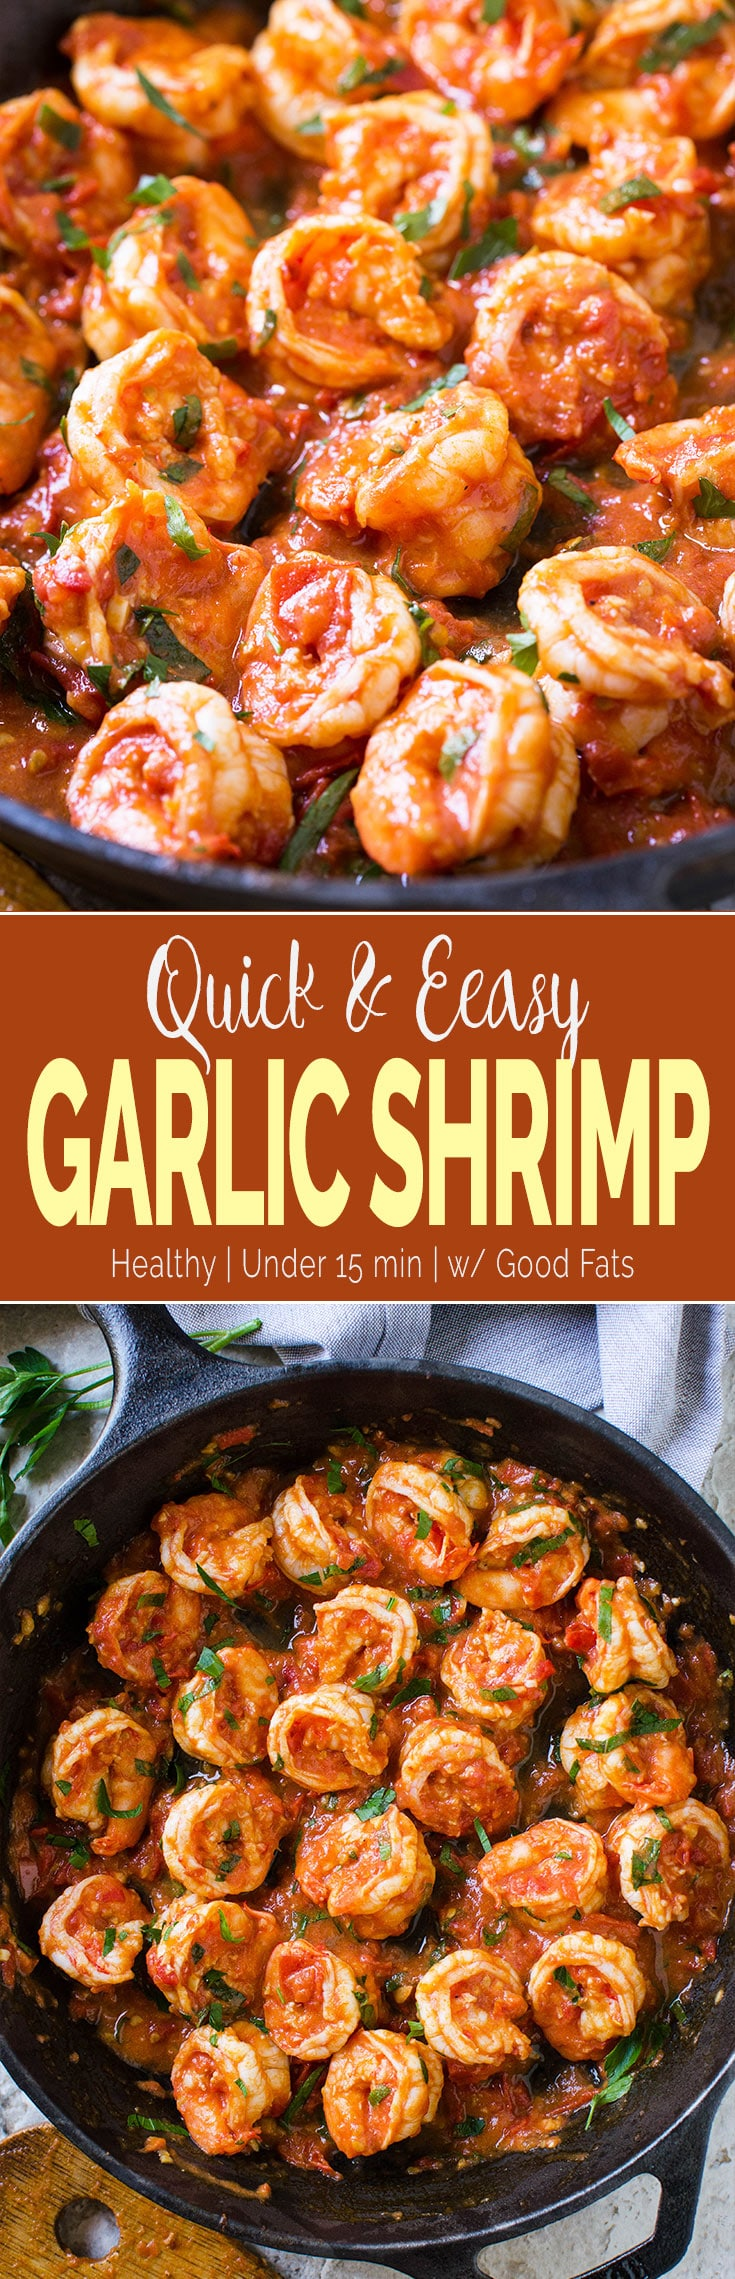 15-Minute Easy Garlic Shrimp Recipe - shrimps cooked to perfection in finger-licking garlic and fresh tomato sauce. Perfect side to pasta, grits or risotto. #shrimp #healthyrecipes